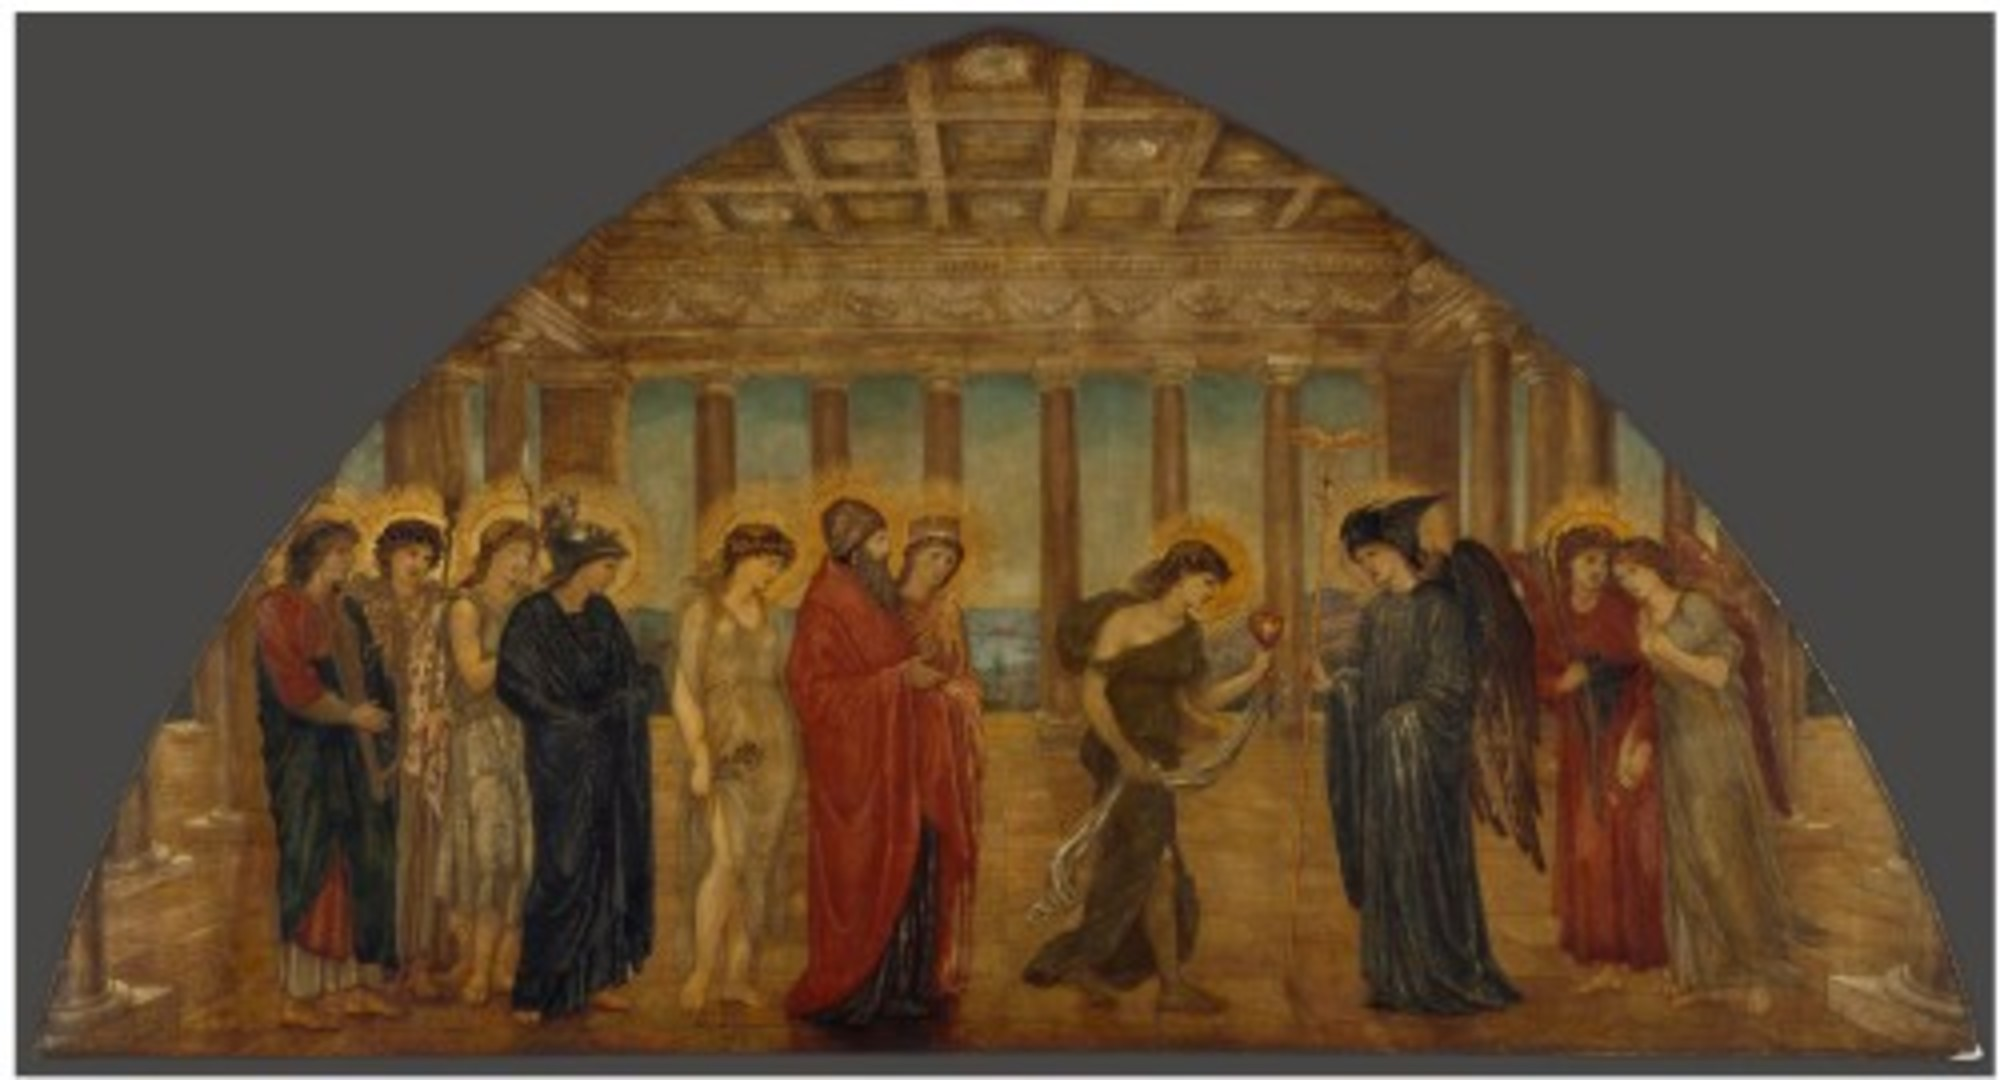 Edward-Burne-Jones---Cupid-and-Psyche---Palace-Green-Murals---Psyche-entering-the-Portals-of-Olympus---Google-Art-Project.jpg